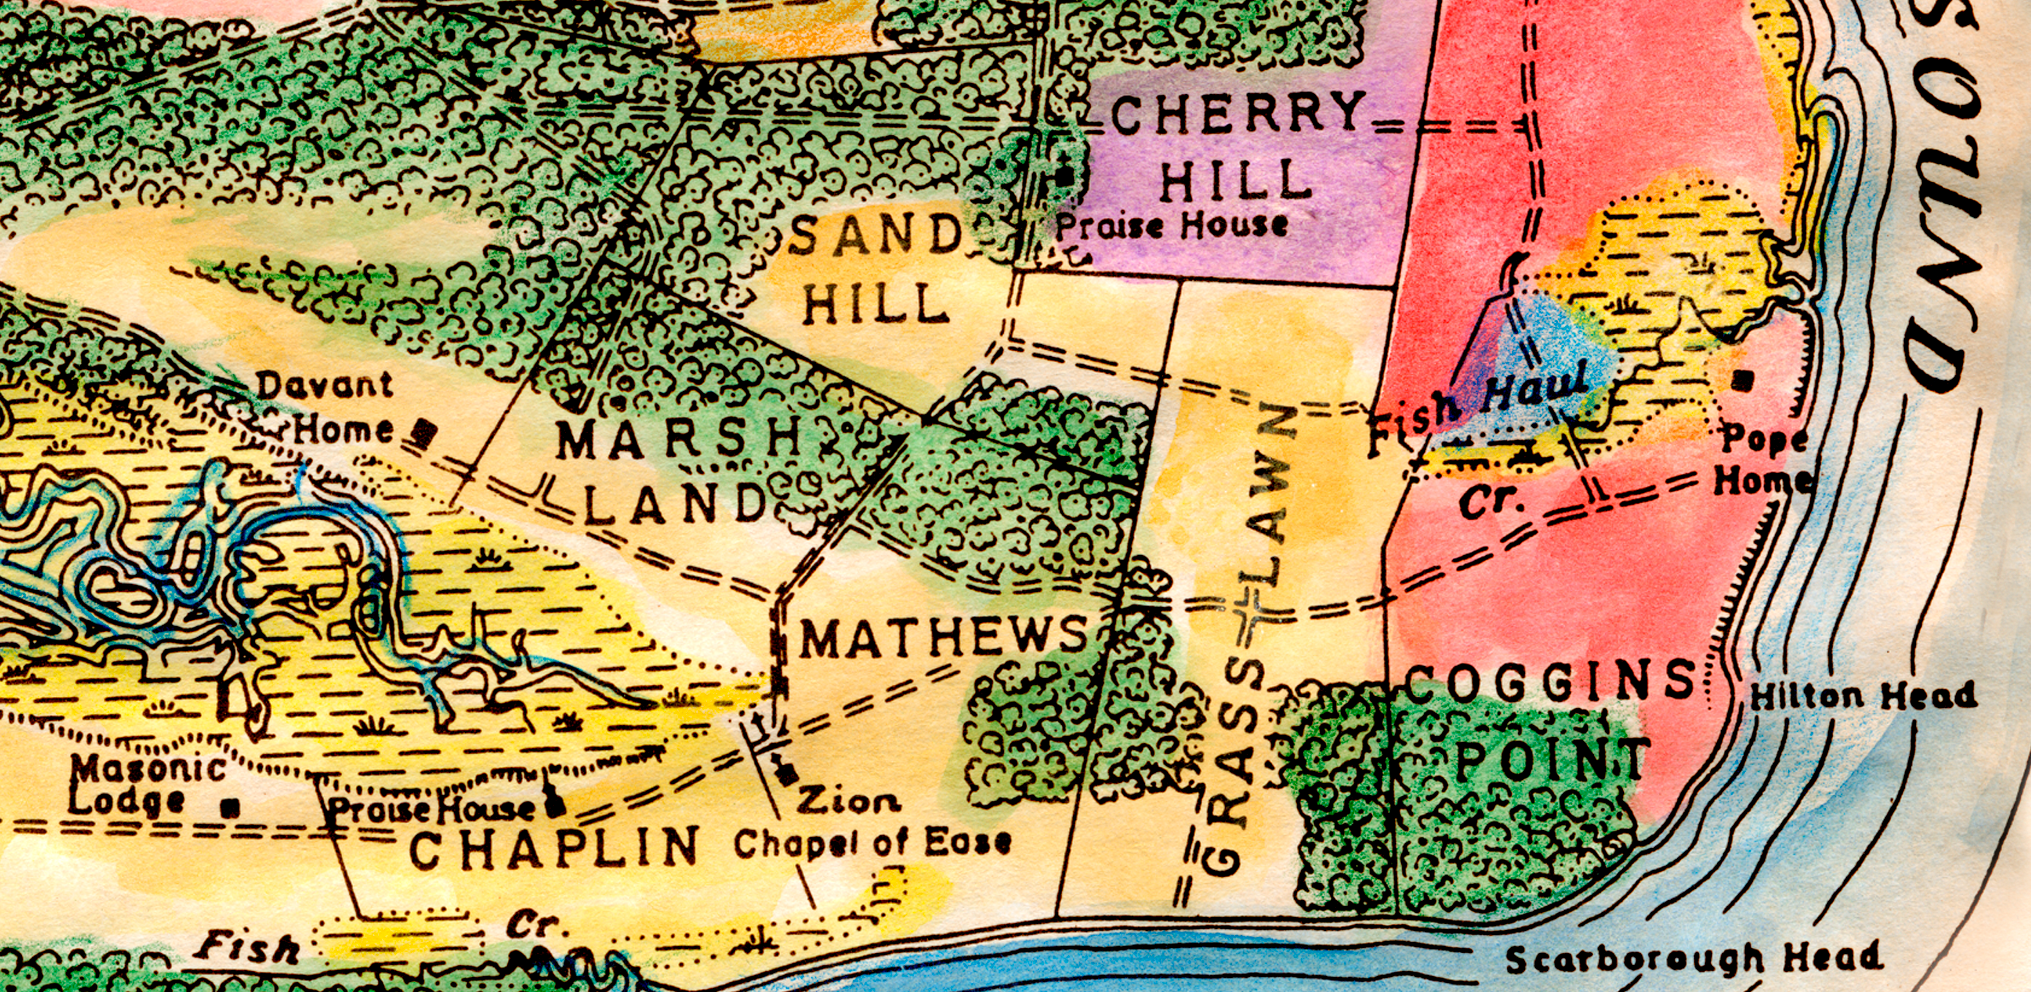 Colorized reproduction of 1861 Map of Northeast Corner of Hilton Head Island